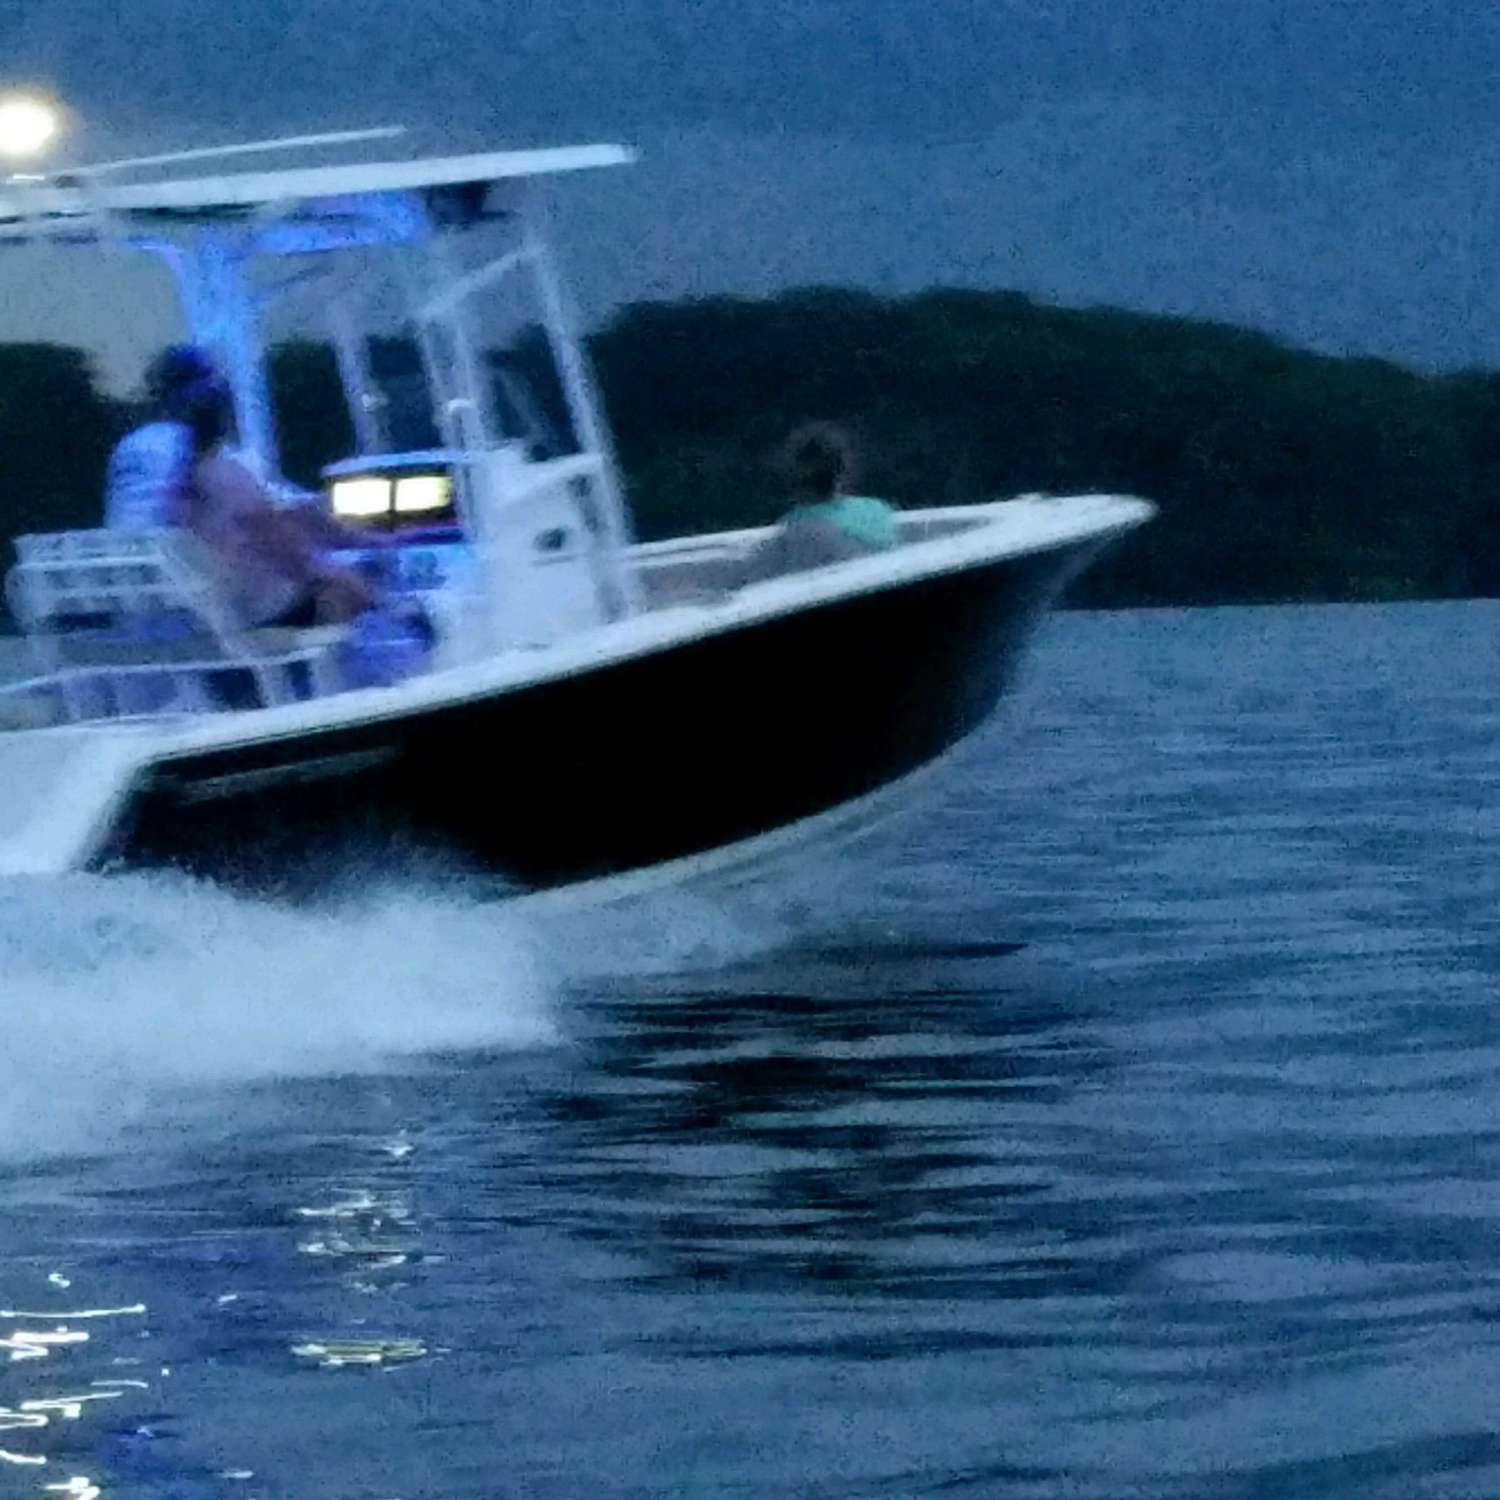 Title: Night Ride - On board their Sportsman Open 212 Center Console - Location: Enoree, South Carolina. Participating in the Photo Contest #SportsmanAugust2017